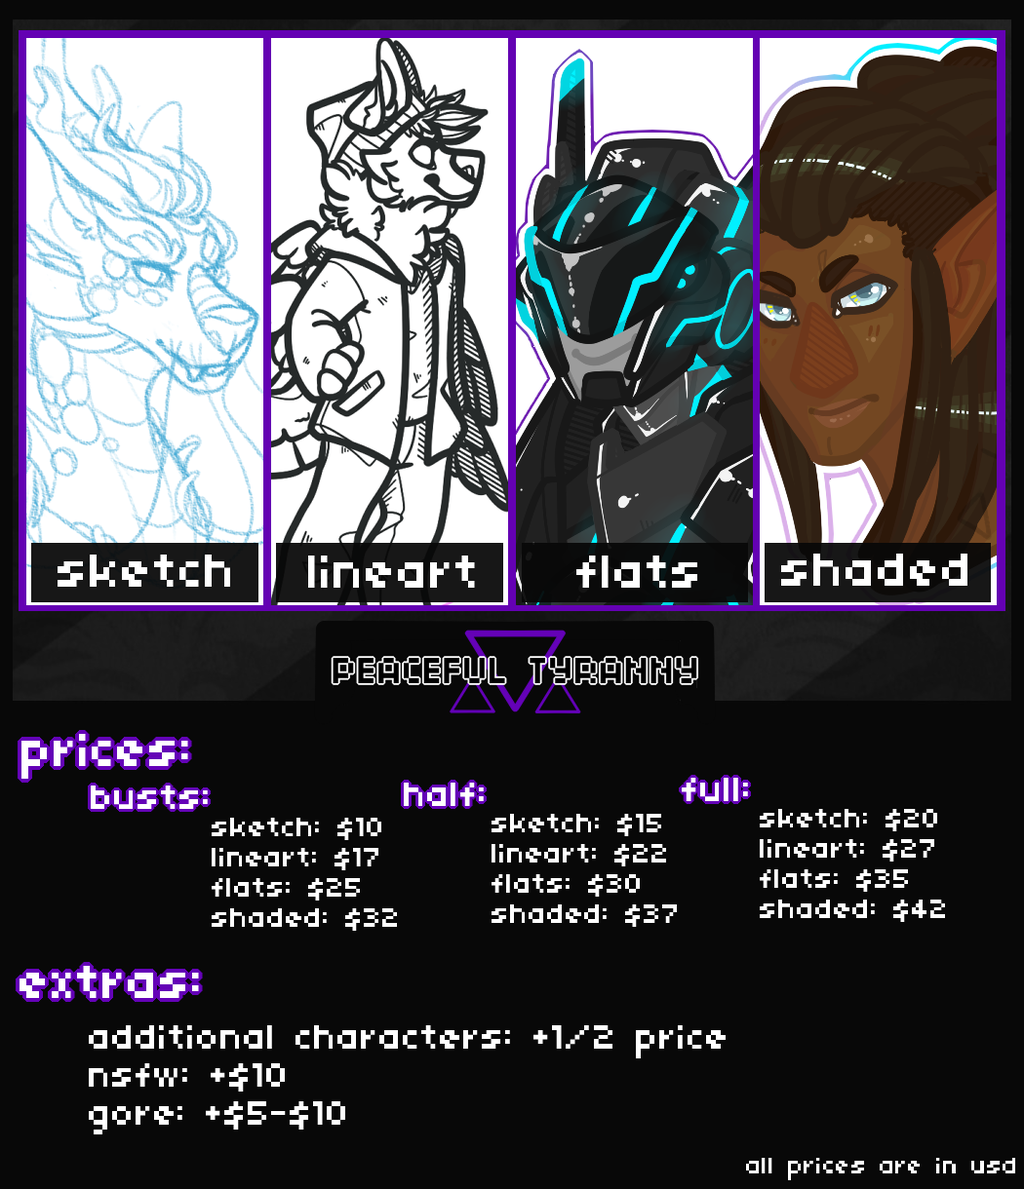 Most recent image: 2015 commission prices